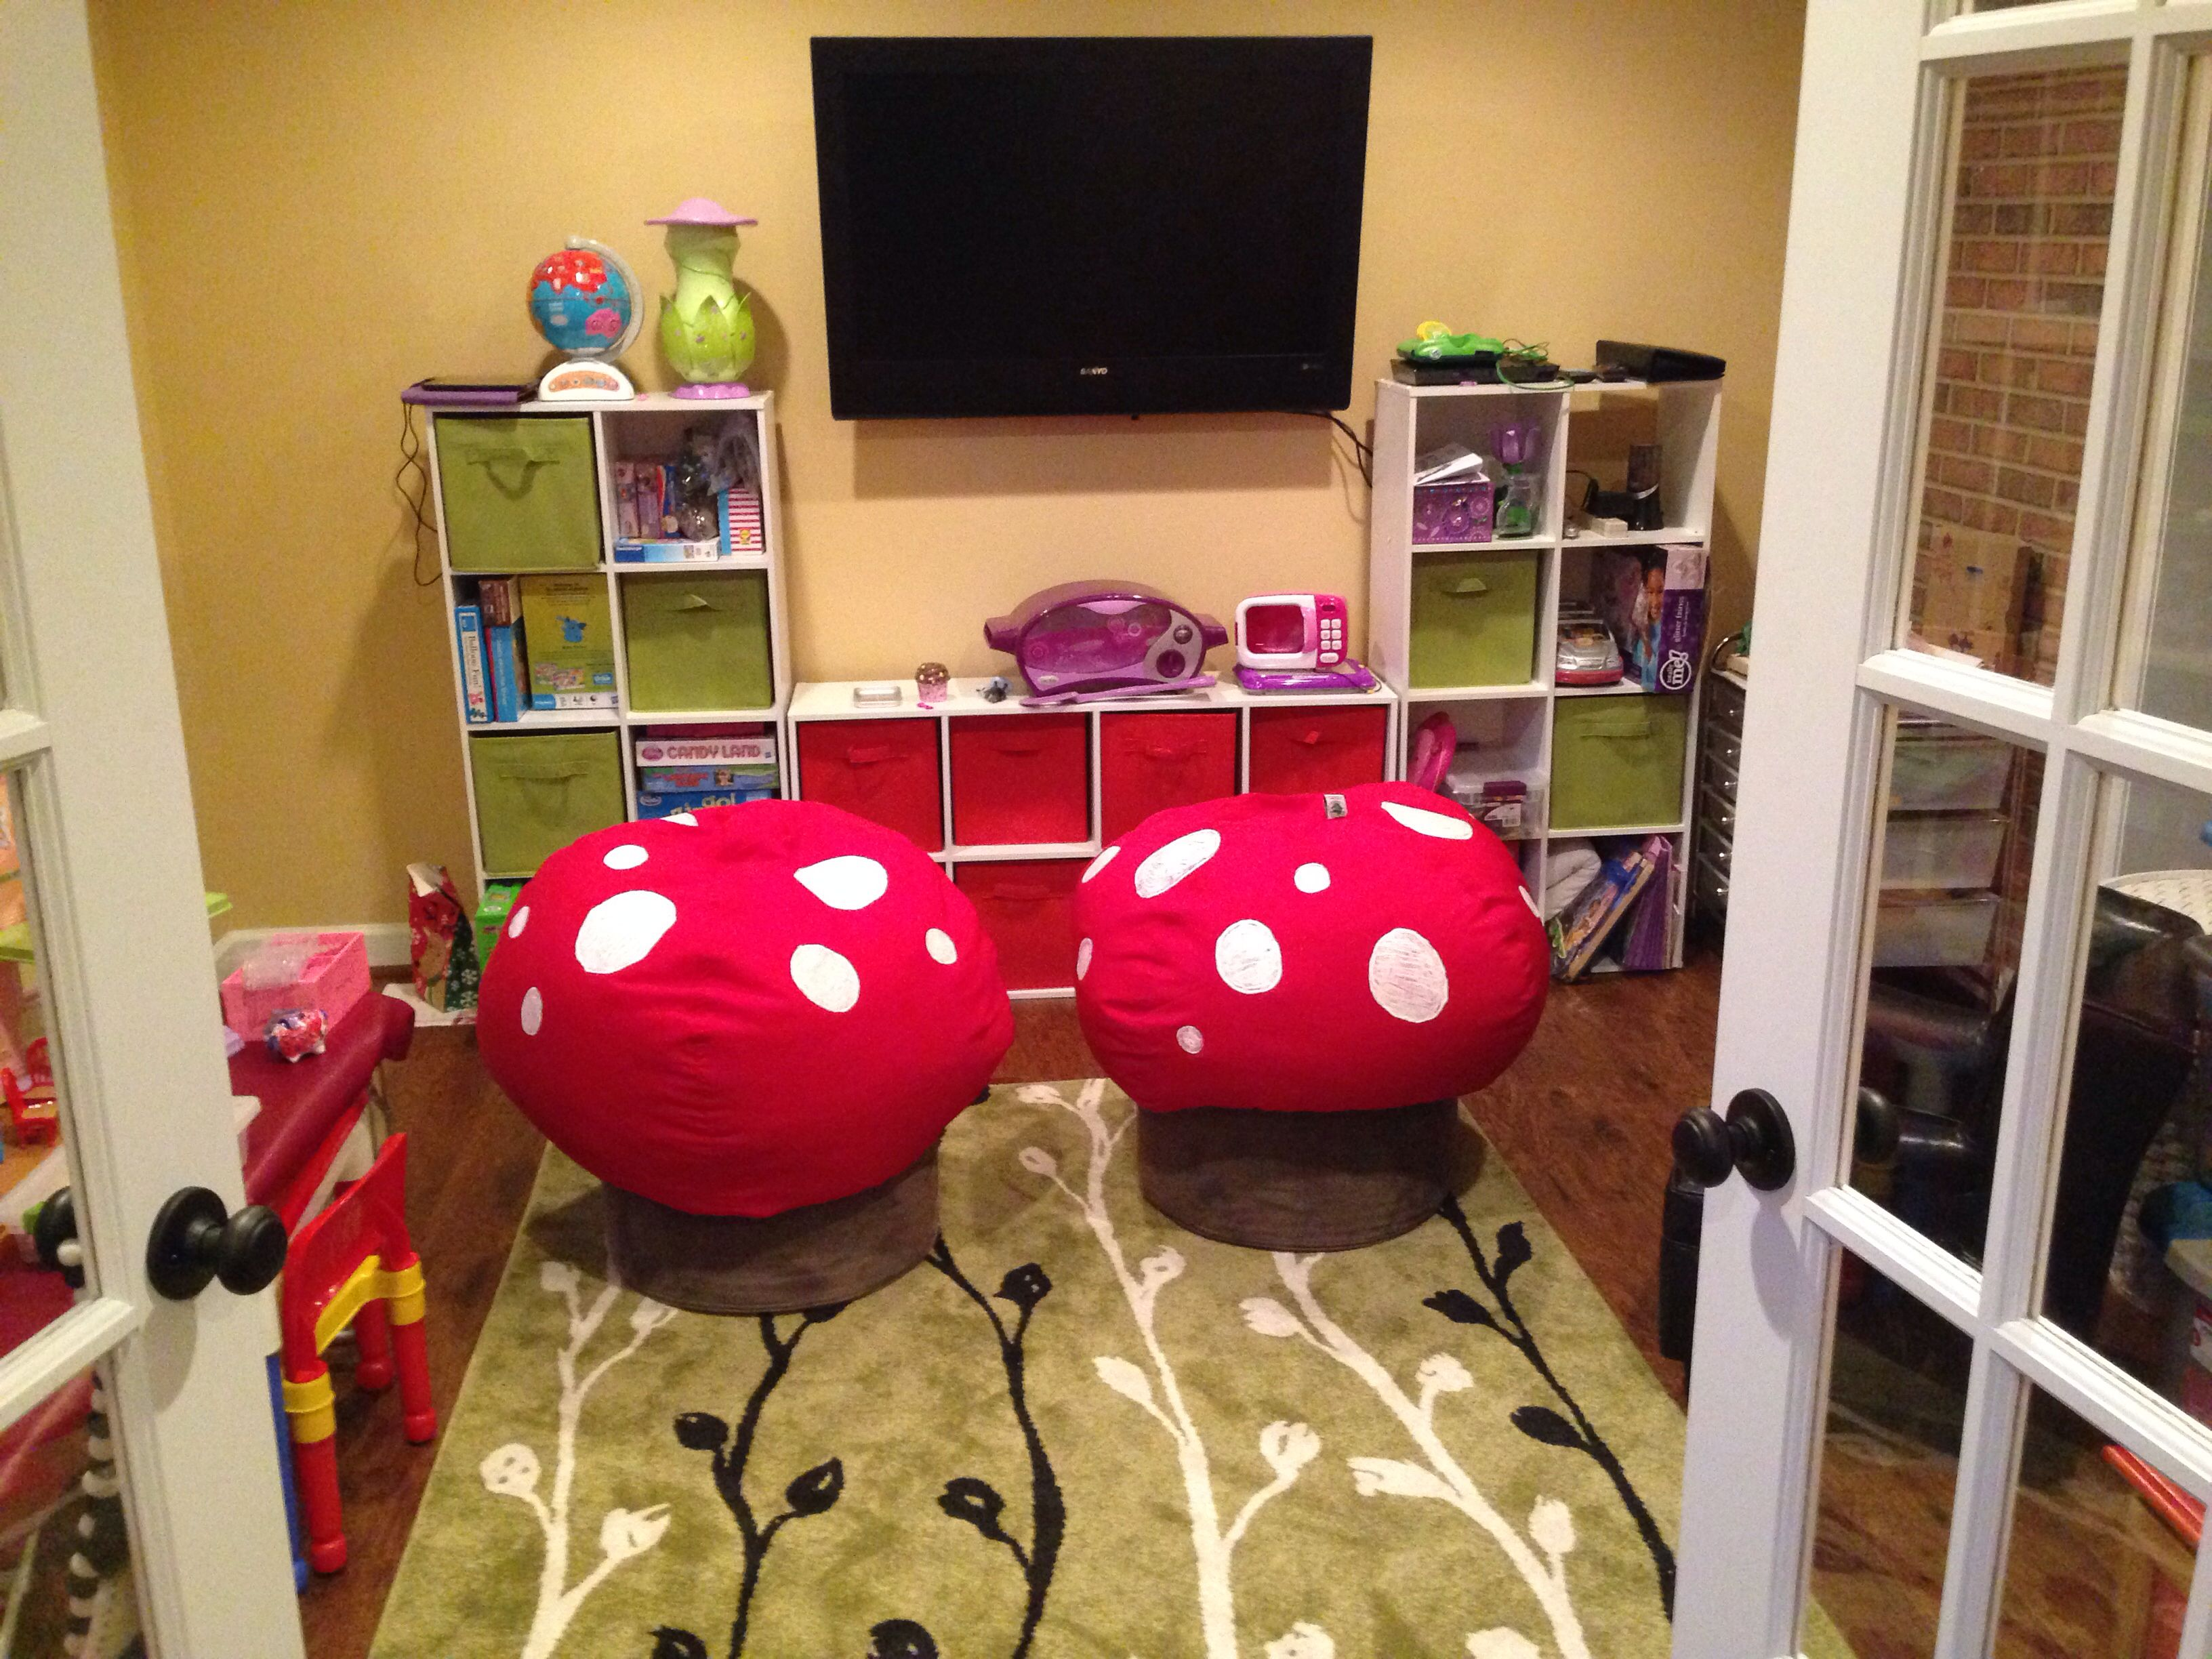 Mushroom Bean Bag Chair Silver Dining Covers Mushrooms Chairs Made From And Ottomans Playroom